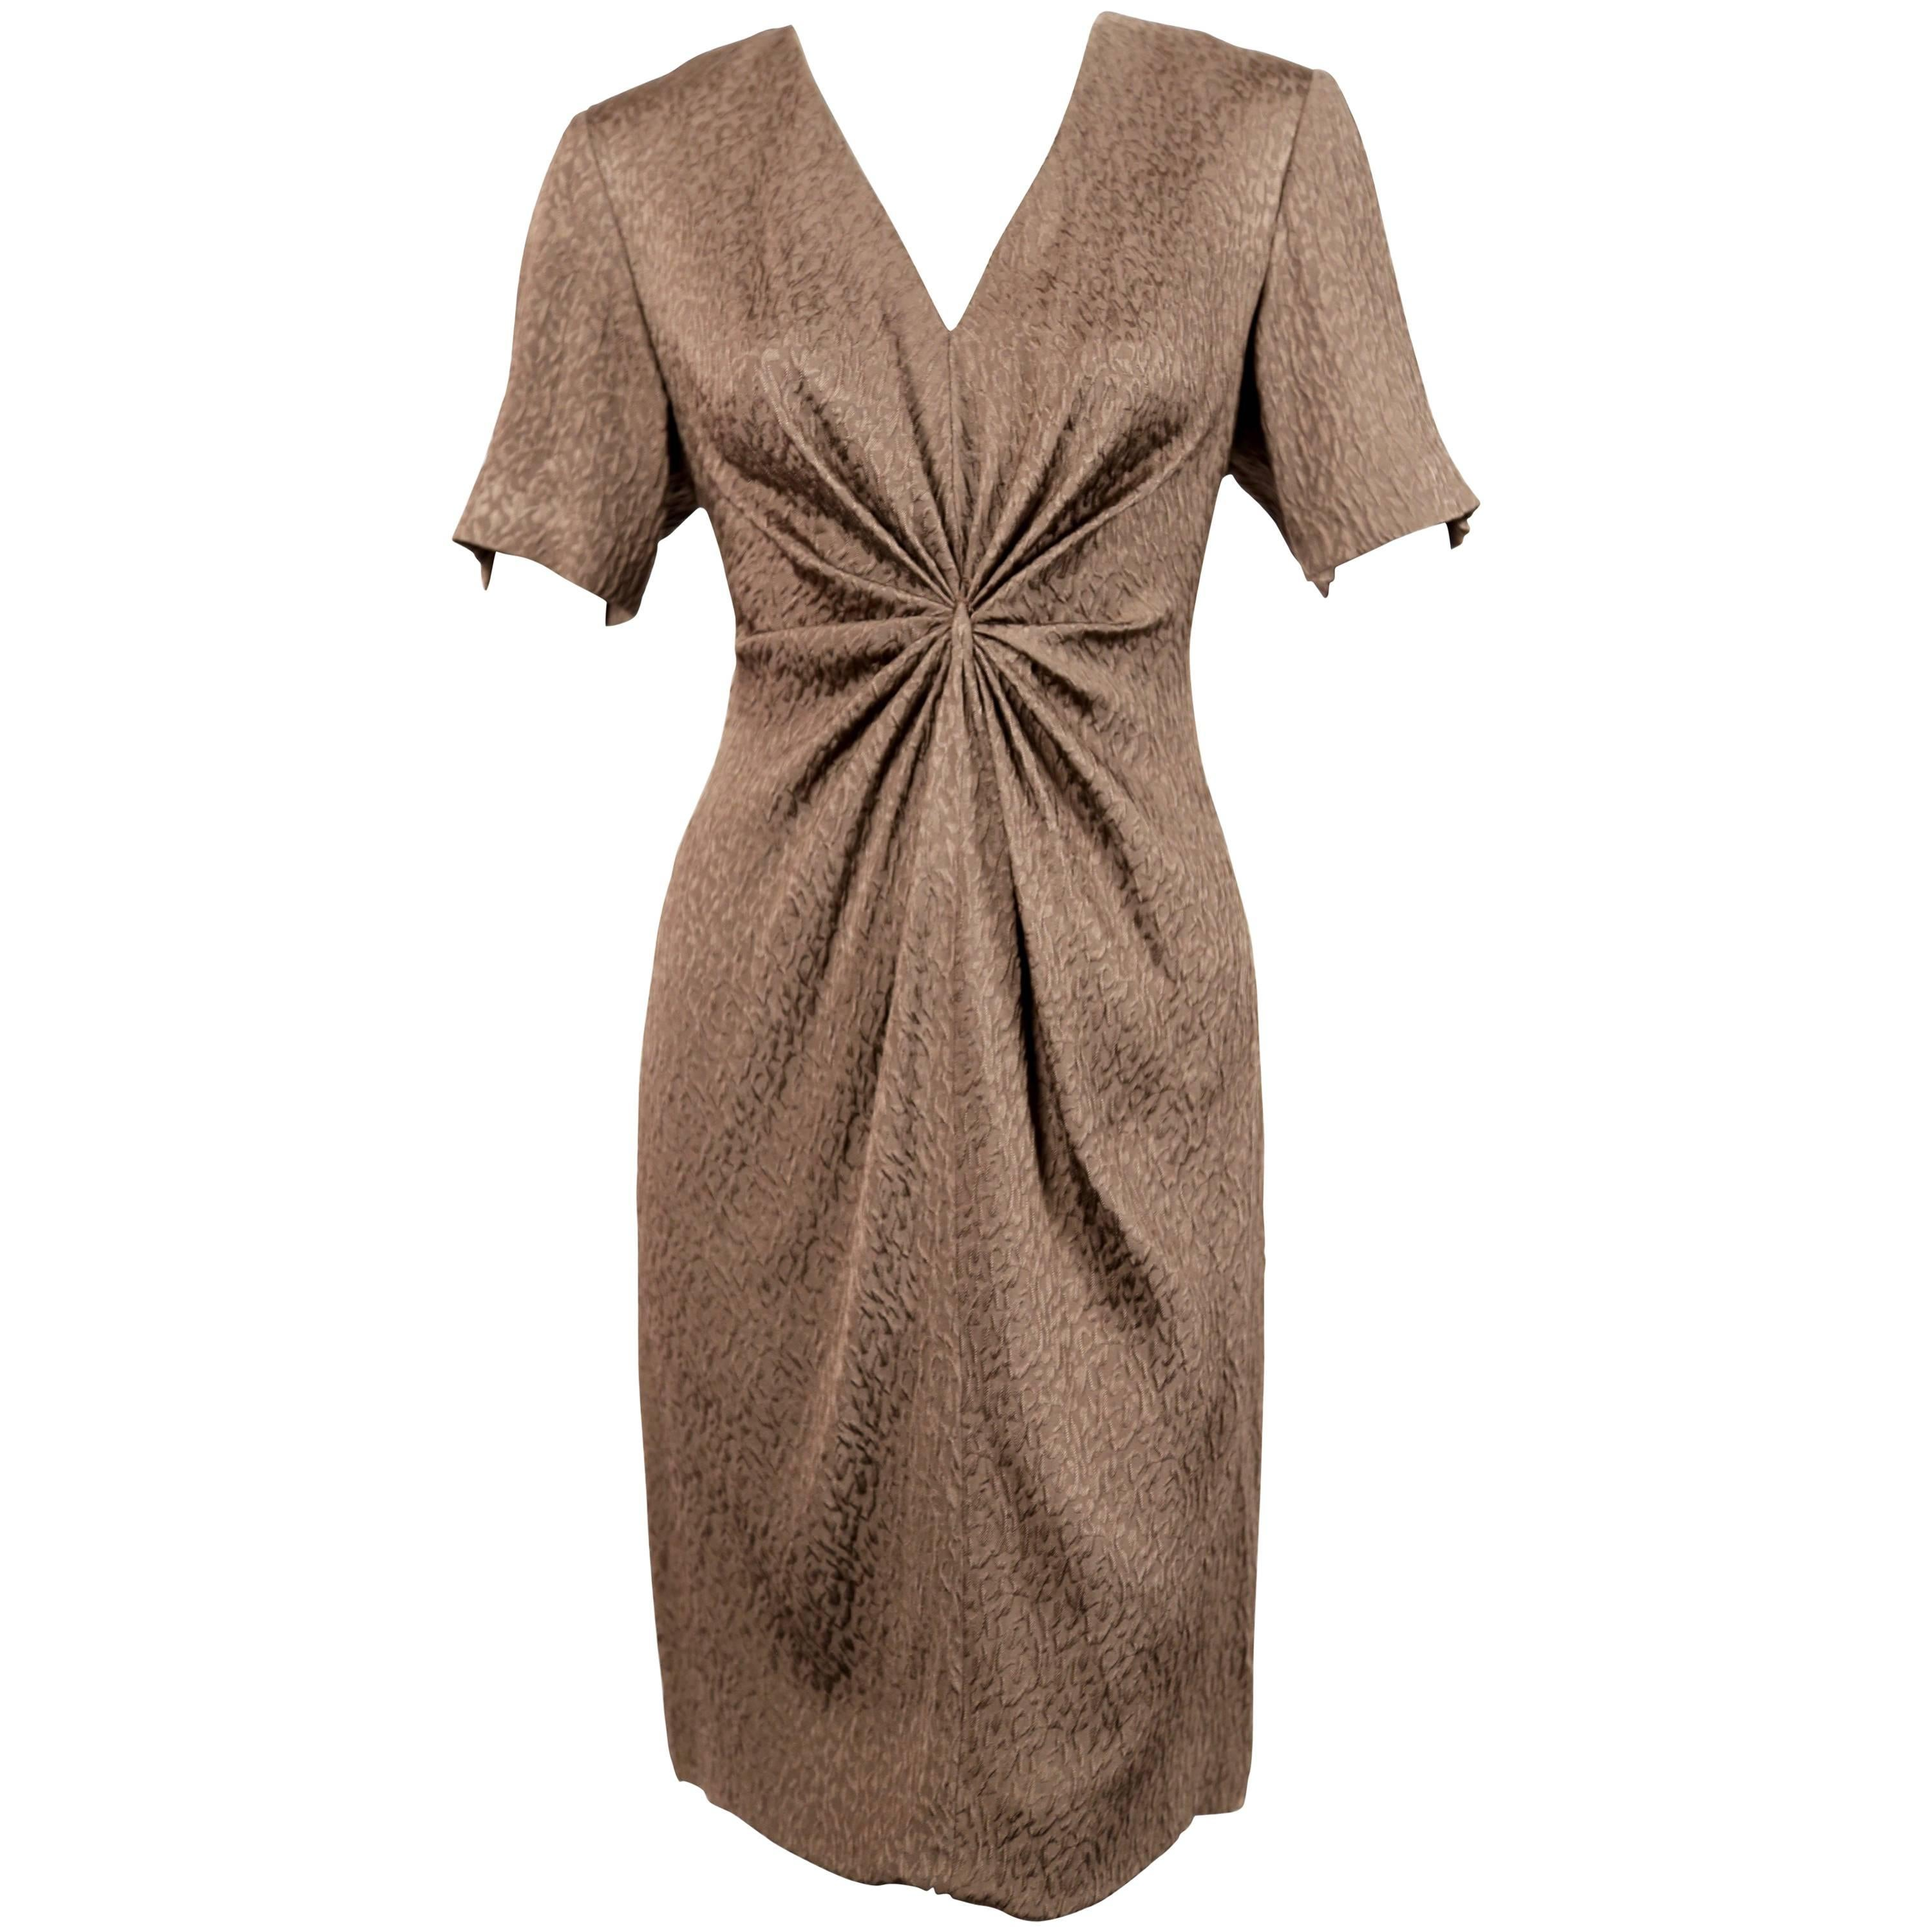 1970's ANDRE LAUG silk dress with gathered waist